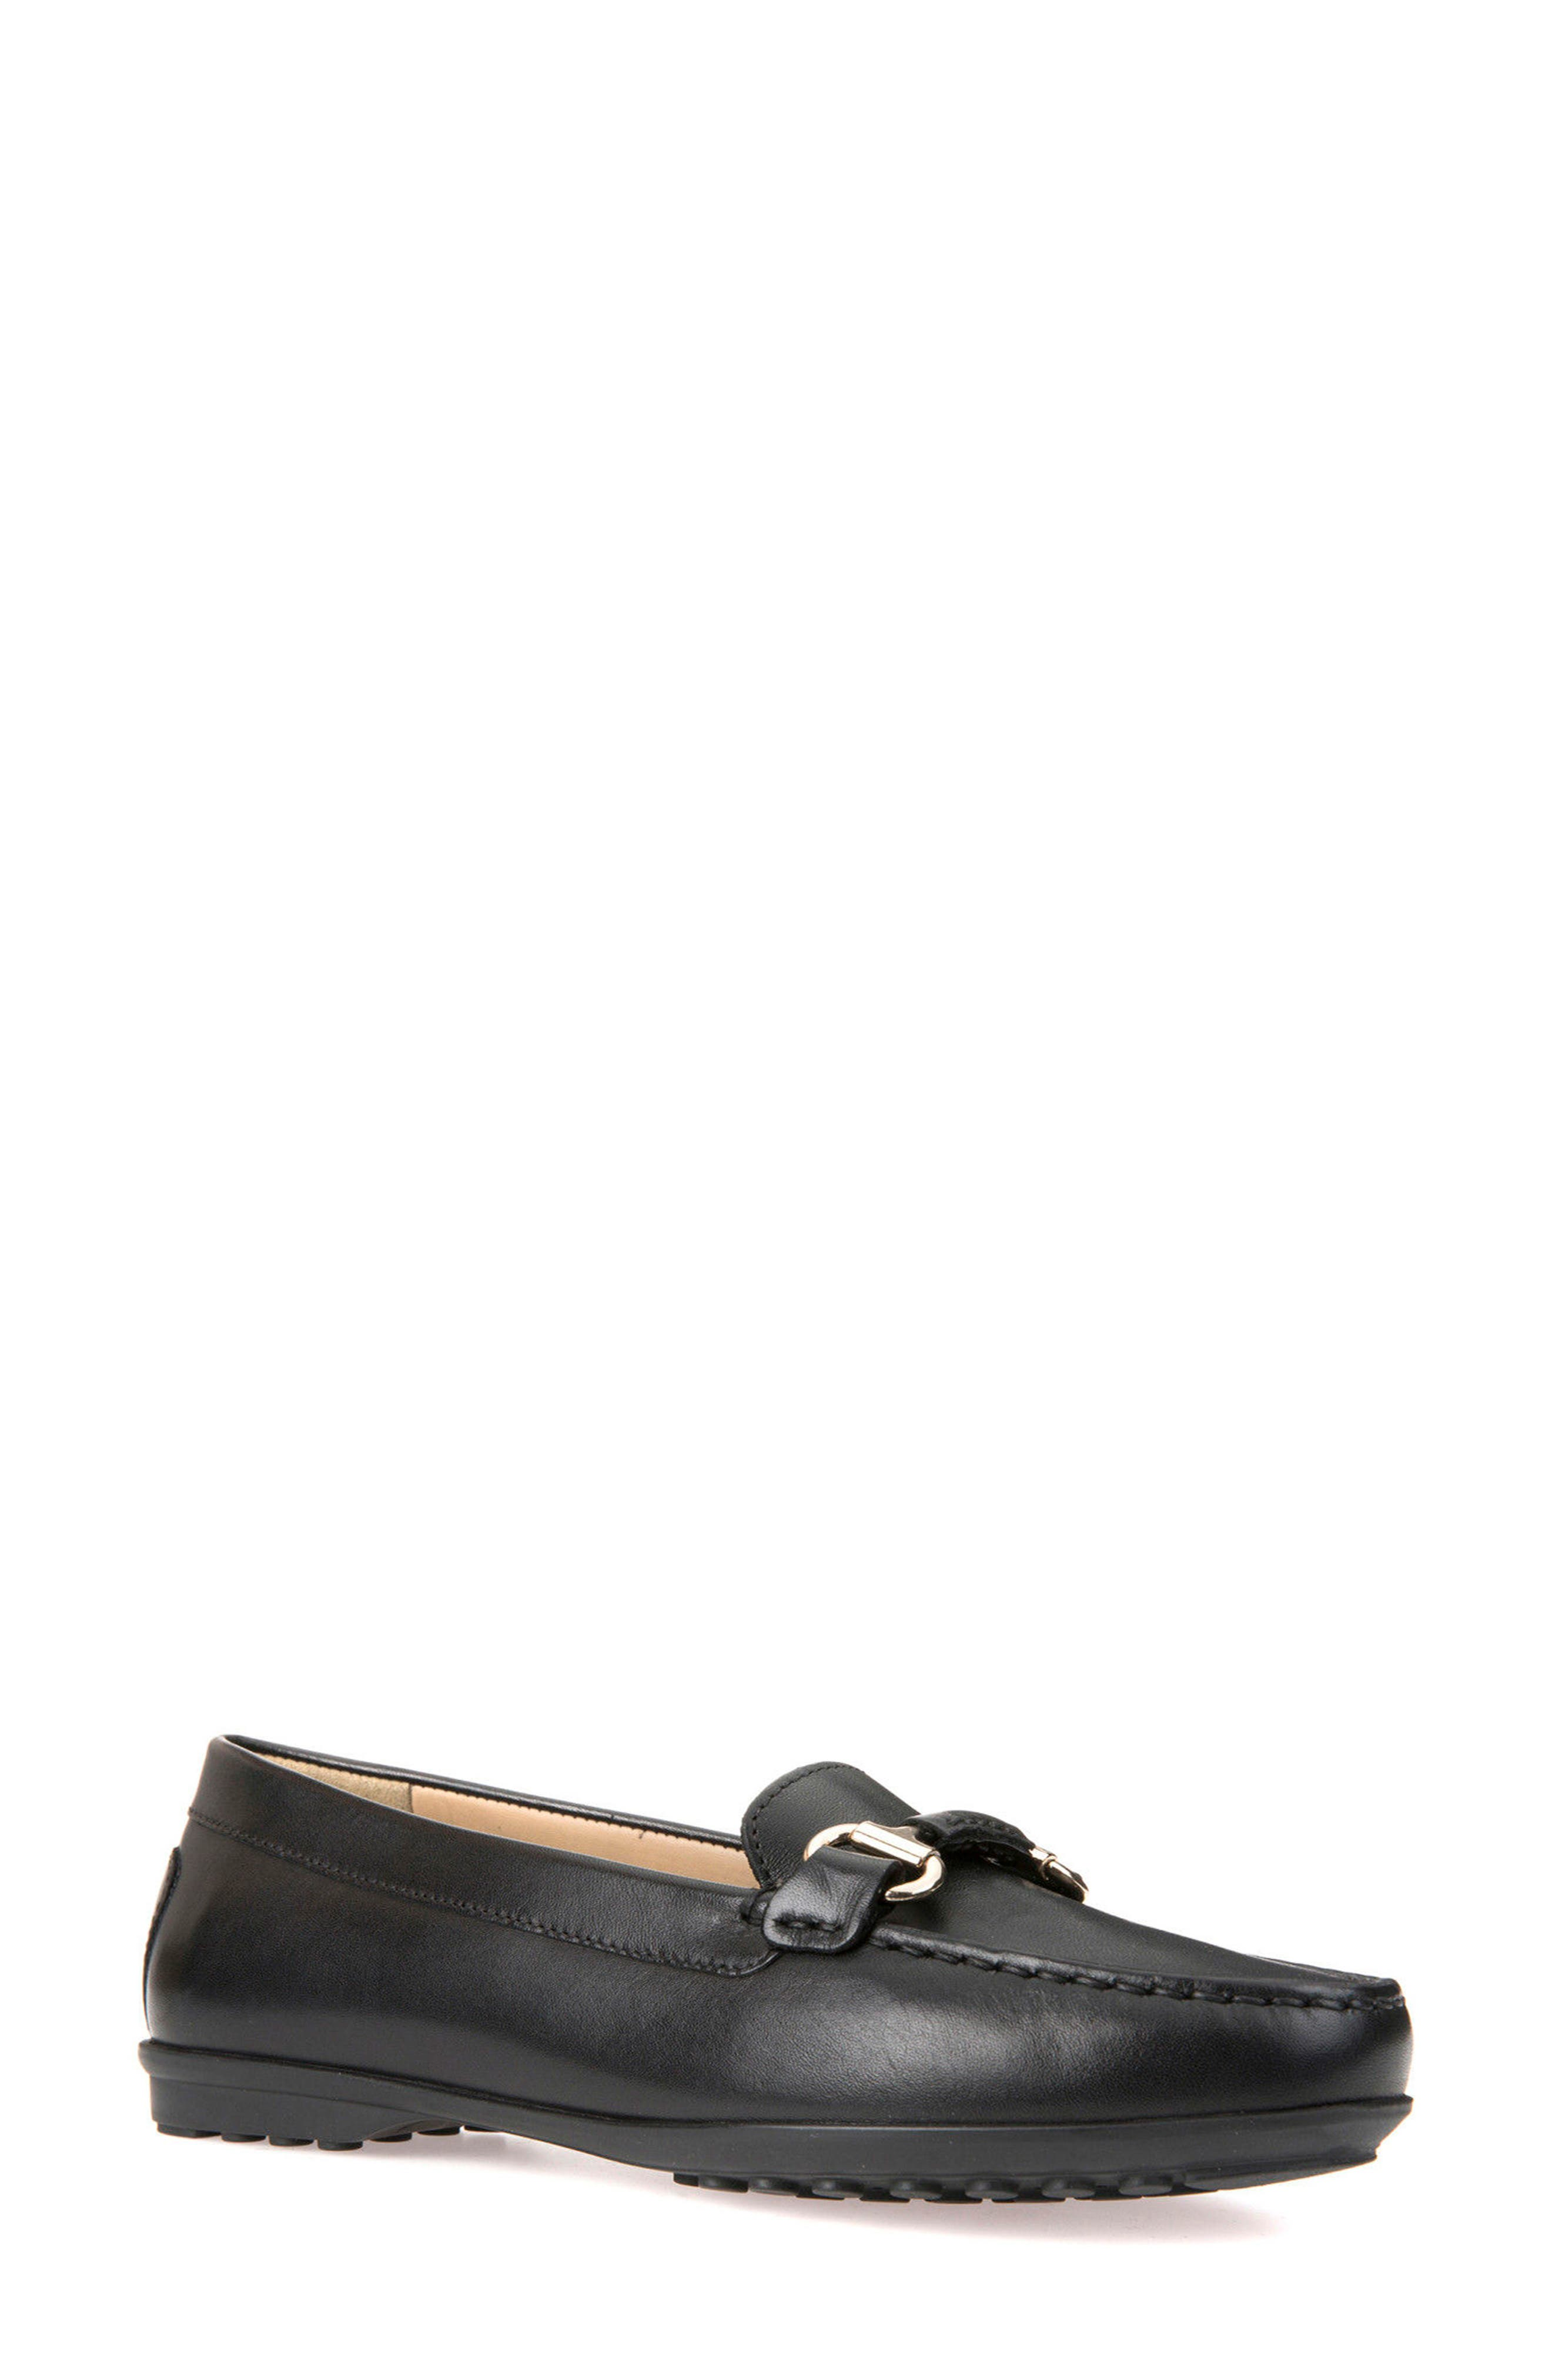 Alternate Image 1 Selected - Geox Elidia Buckle Loafer (Women)